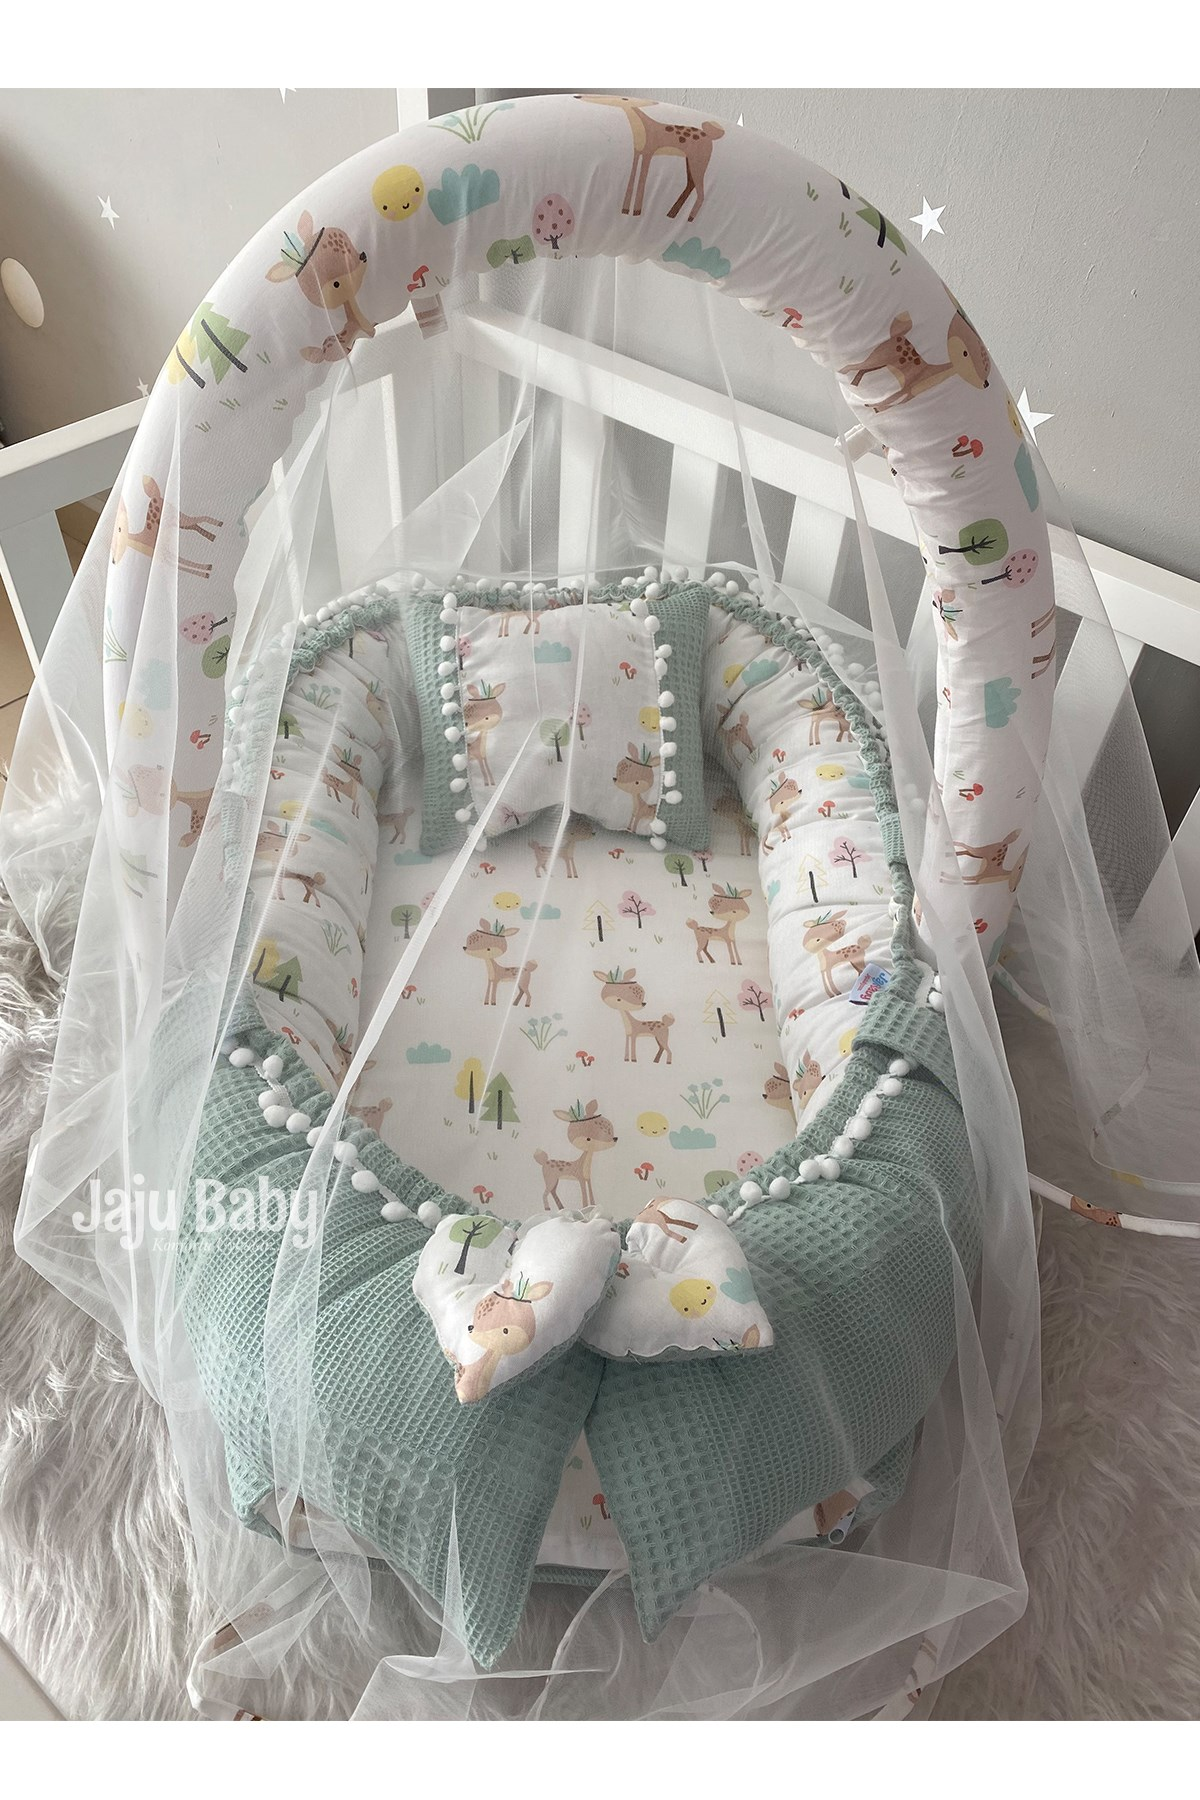 Jaju Baby Special Handmade Wafle Green Pique Fabric Poplin Fabric Pompon Babynest Toy Apparatus and Tulle Set